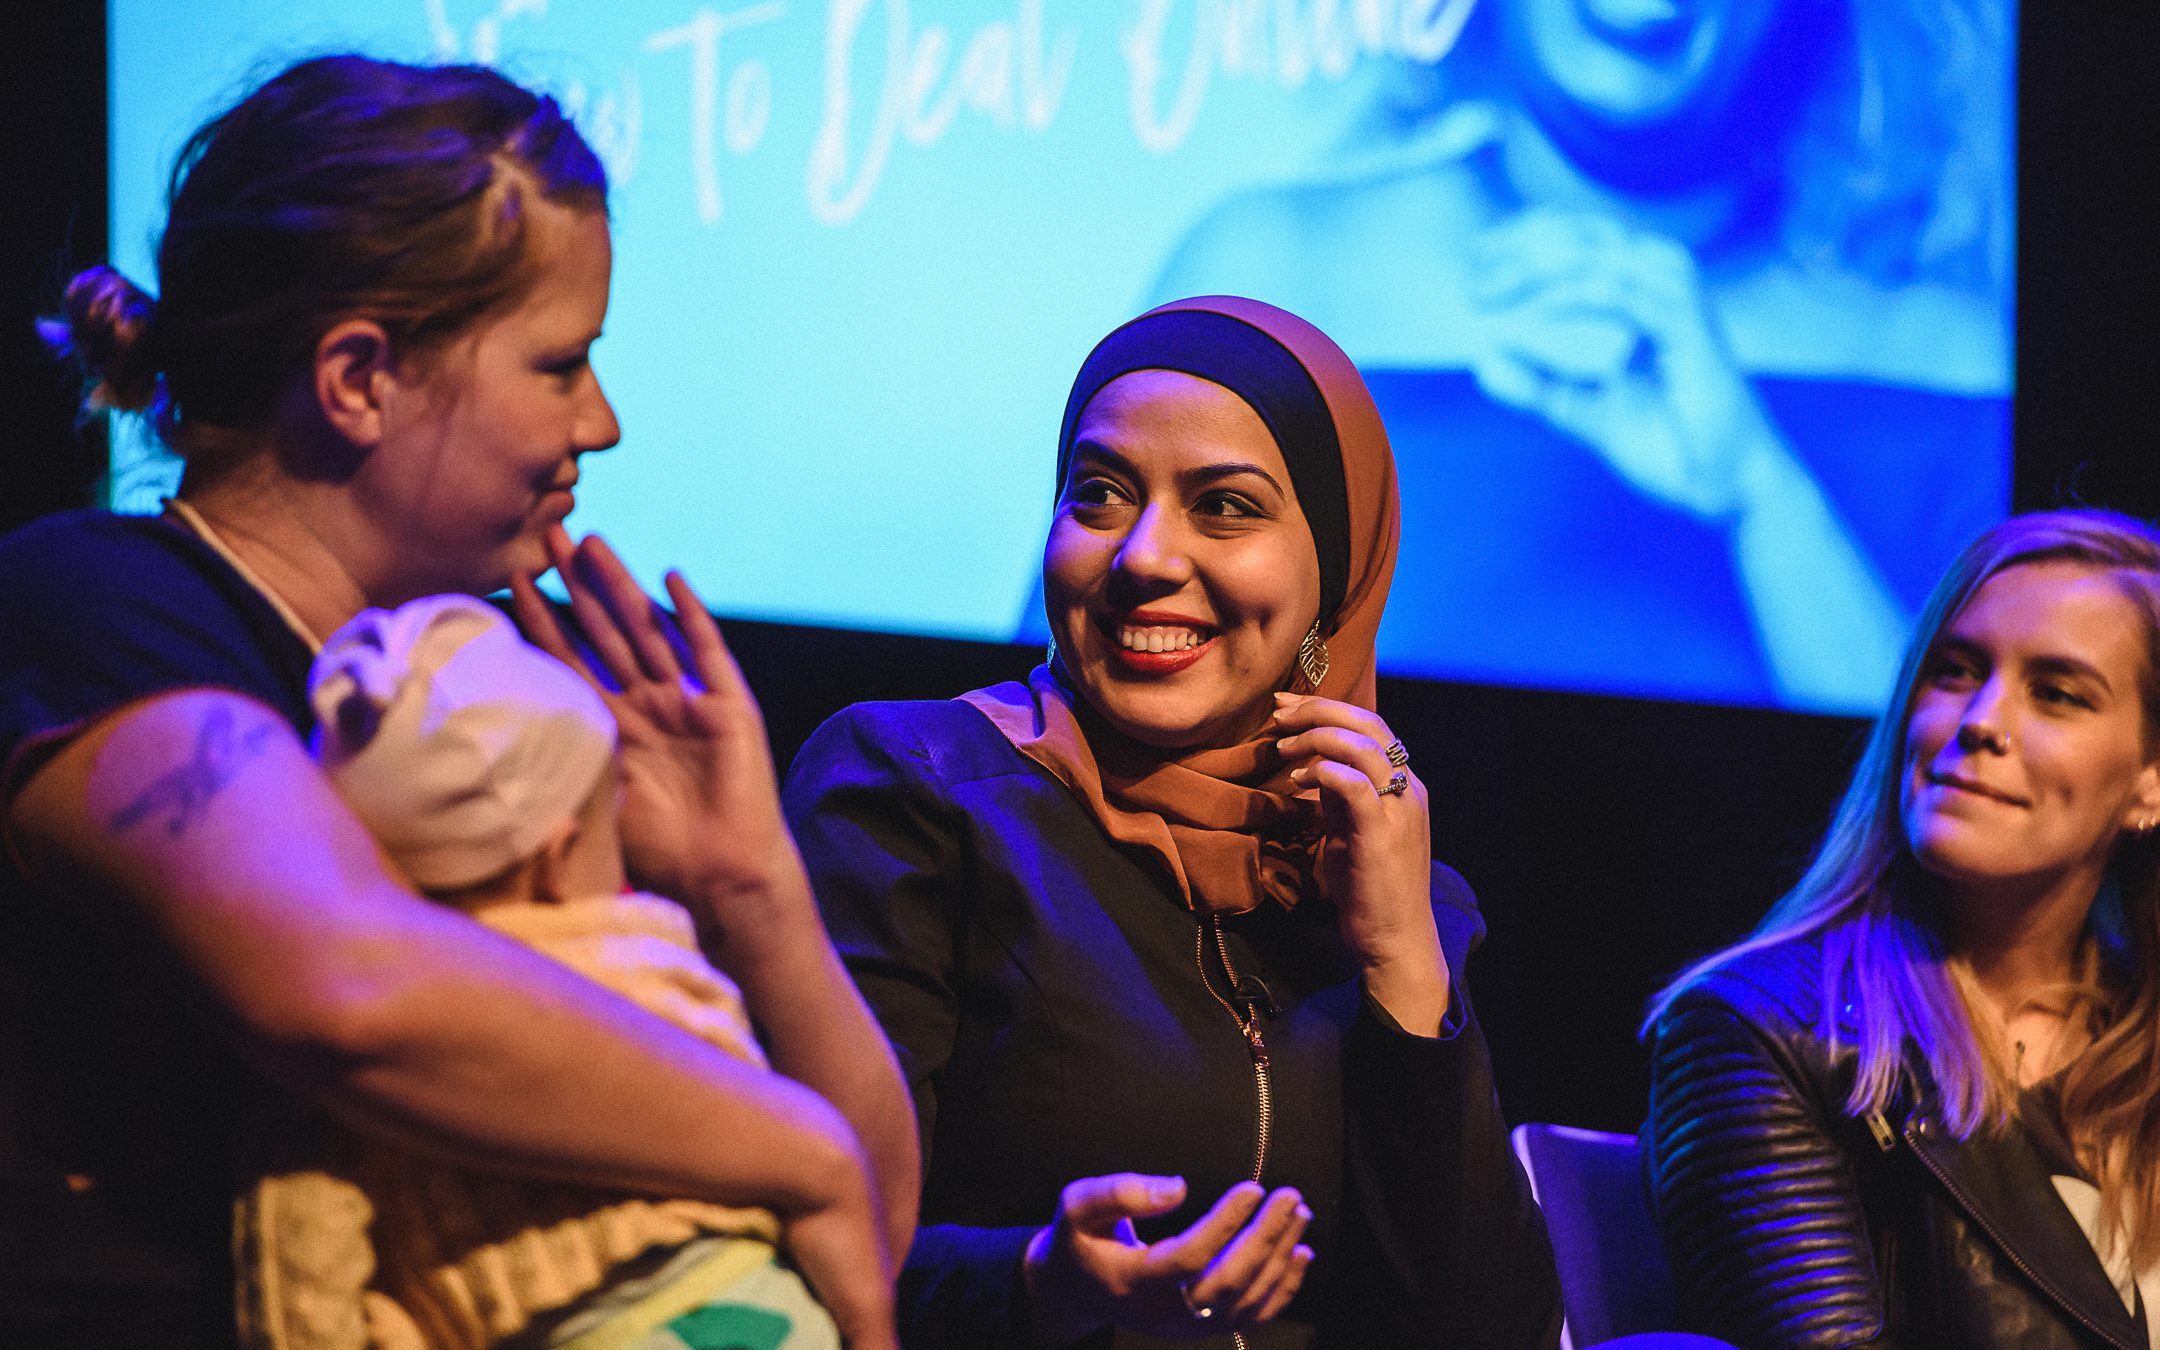 How to Deal Online - Panel Session with Clementine Ford, Mariam Veiszadeh and Stephanie Bendixsen